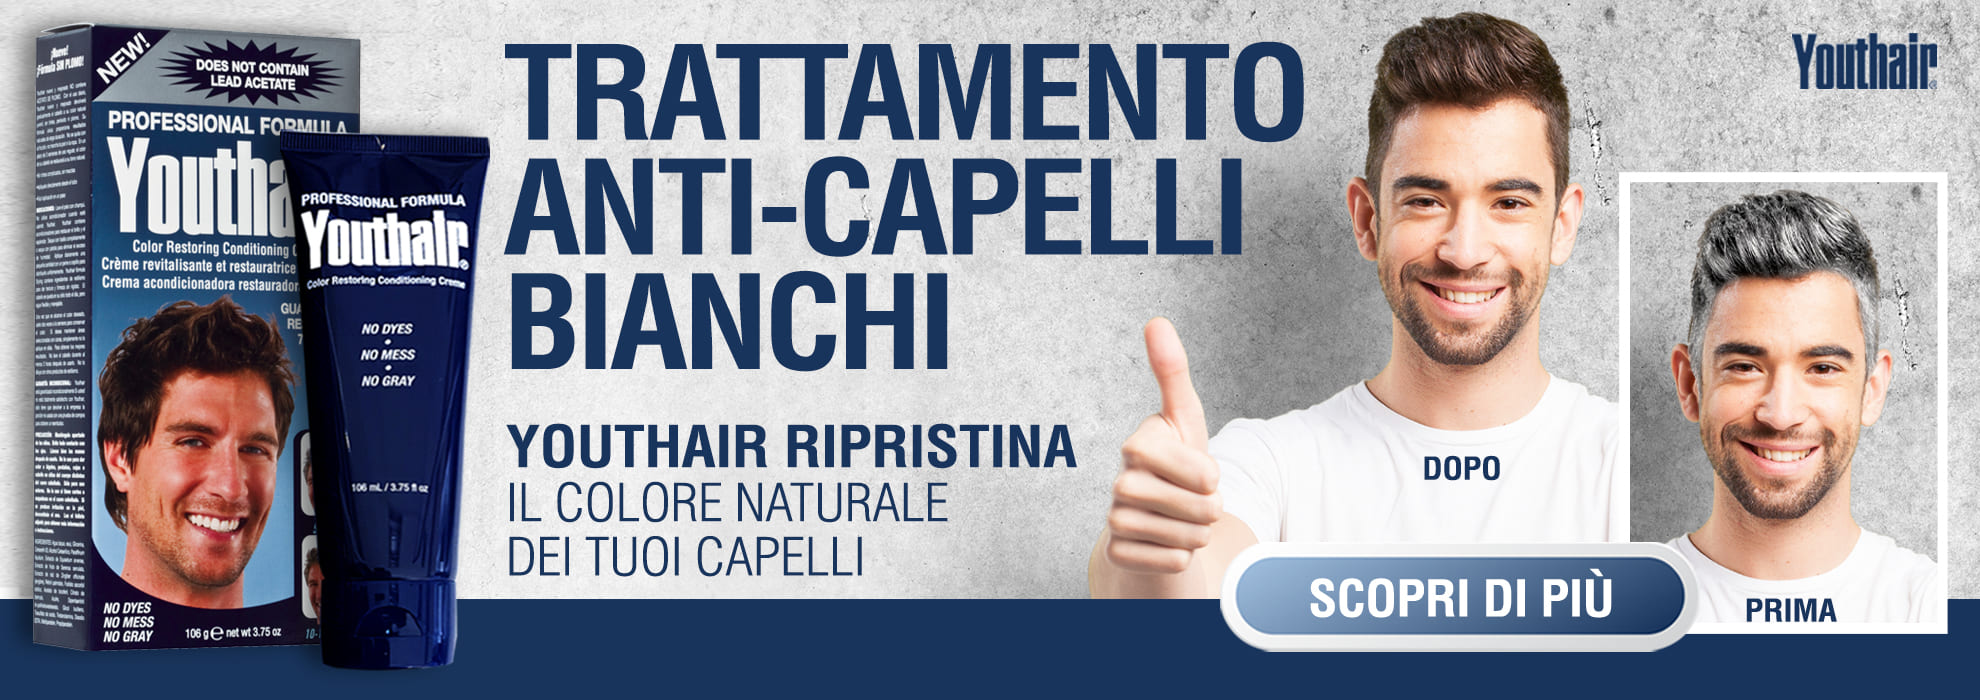 YOUTHAIR capelli bianchi